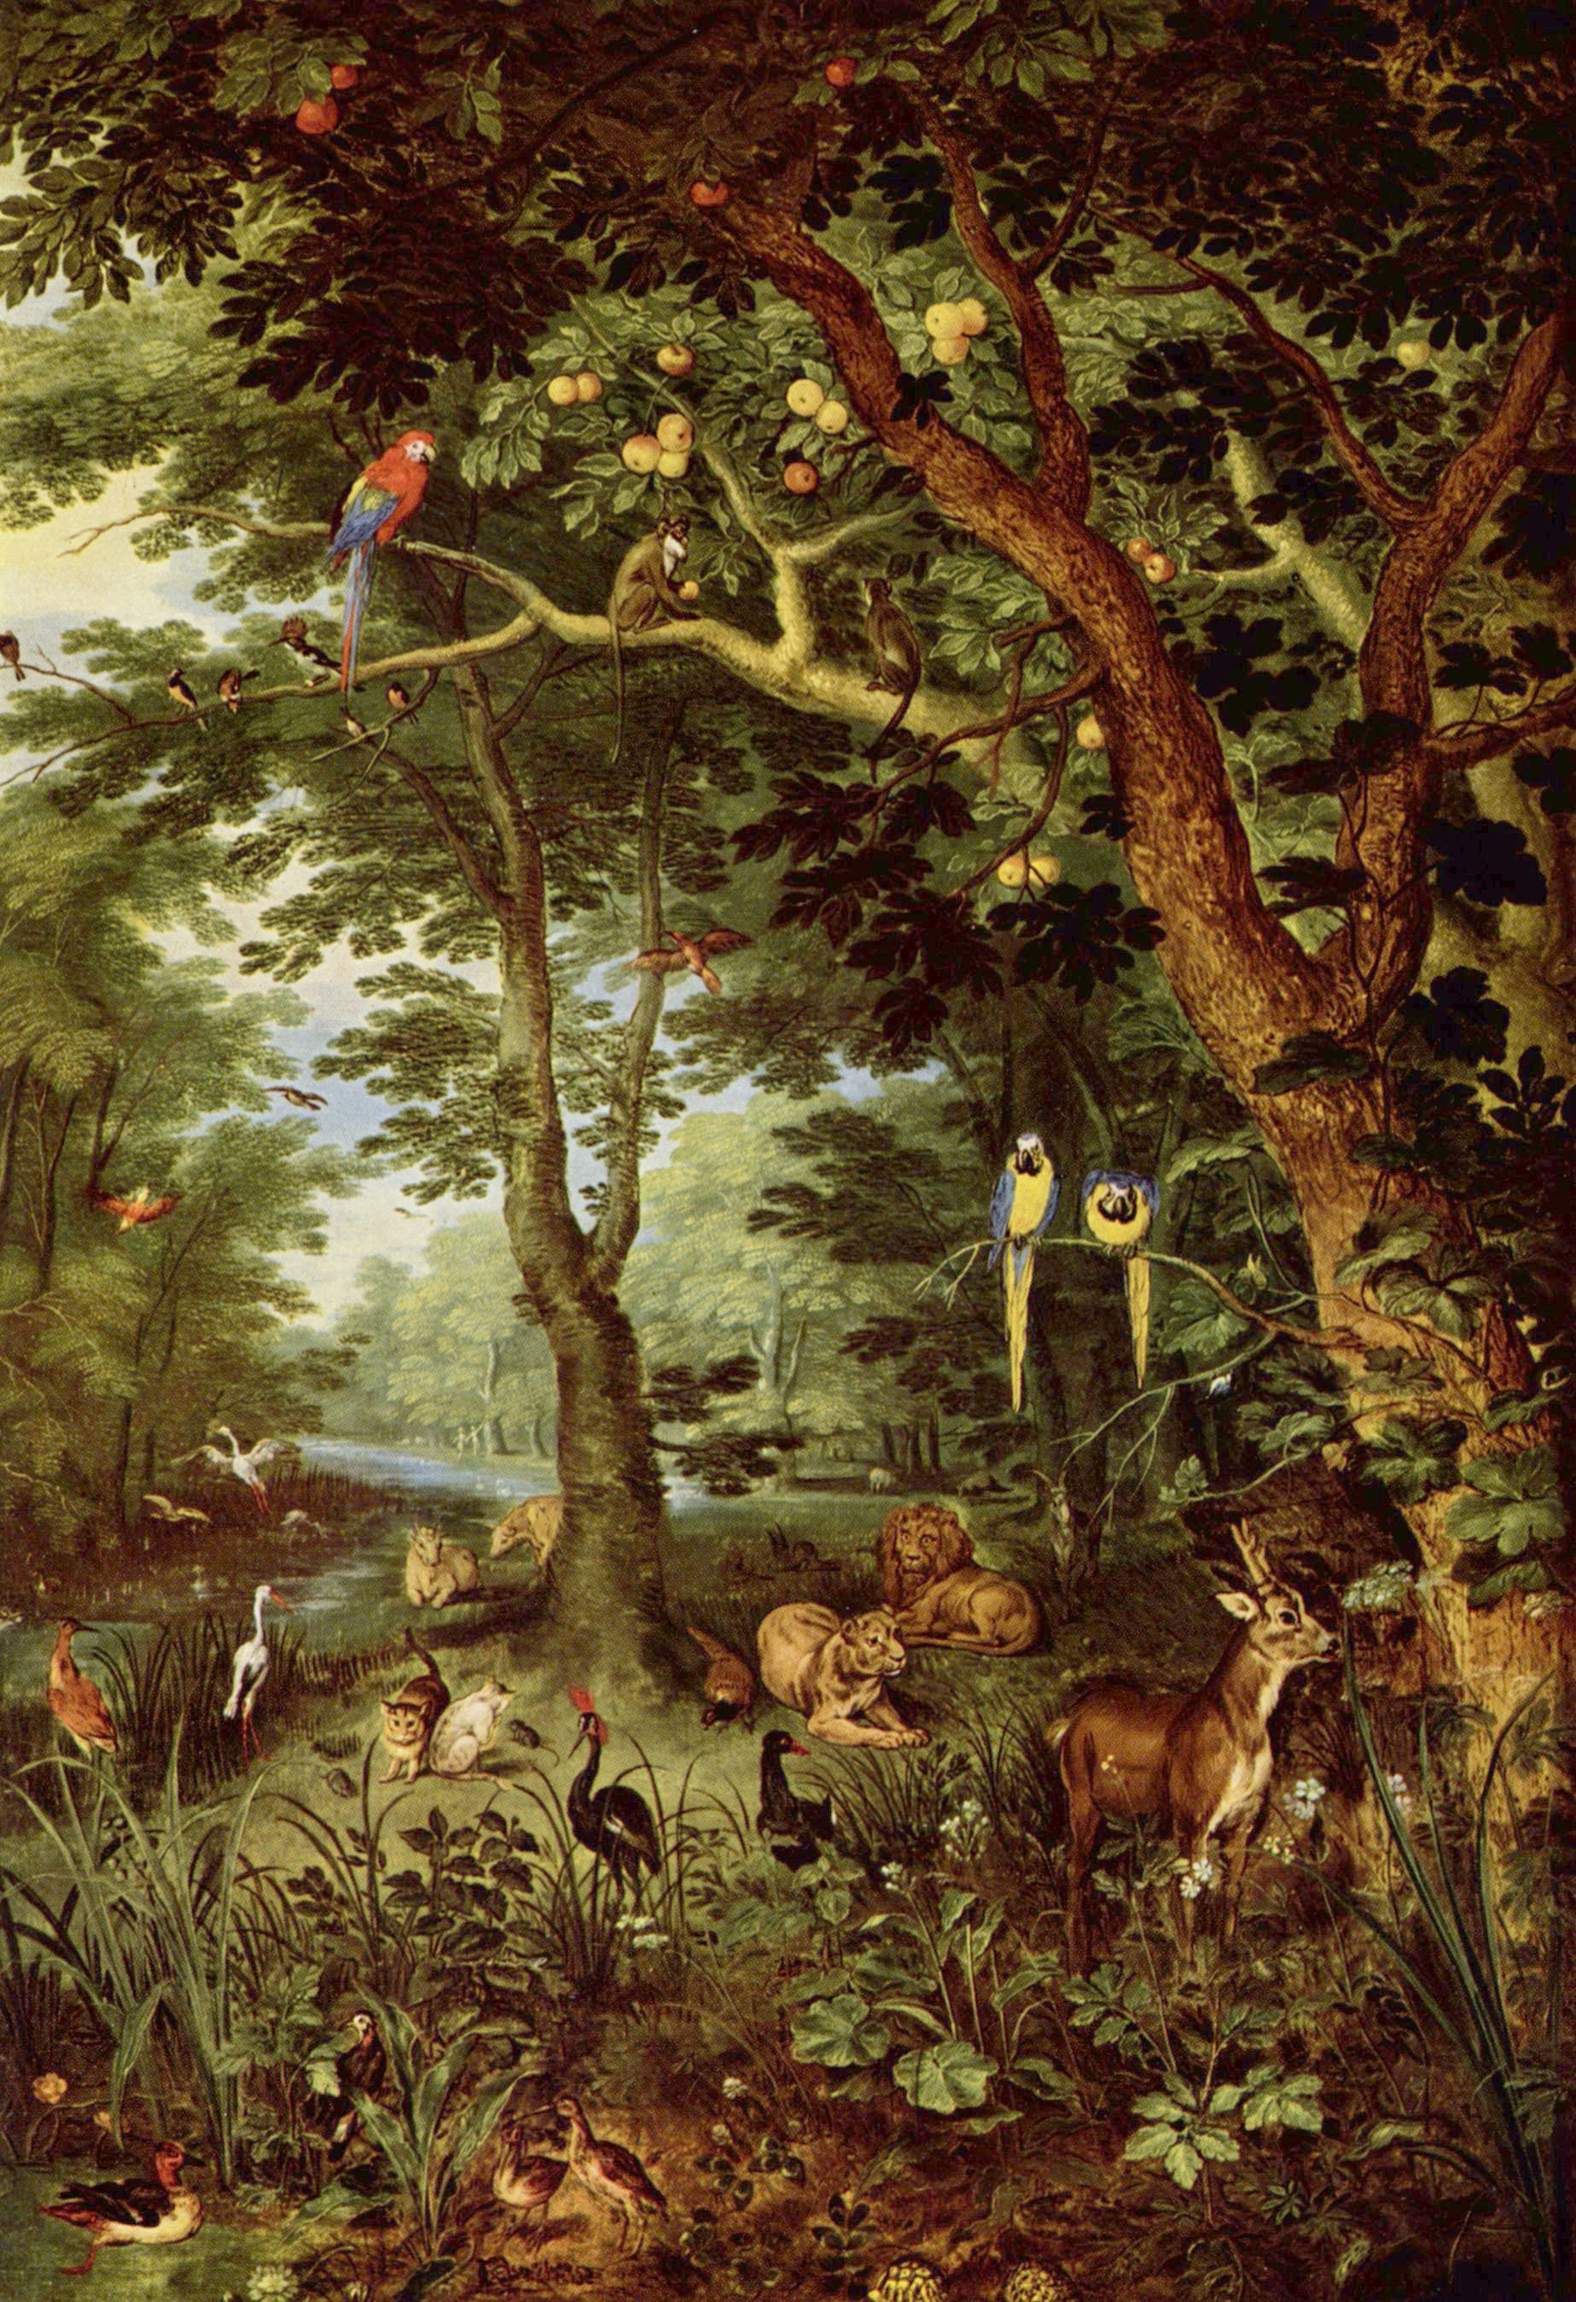 Paradise Trees: On Earth as in Heaven